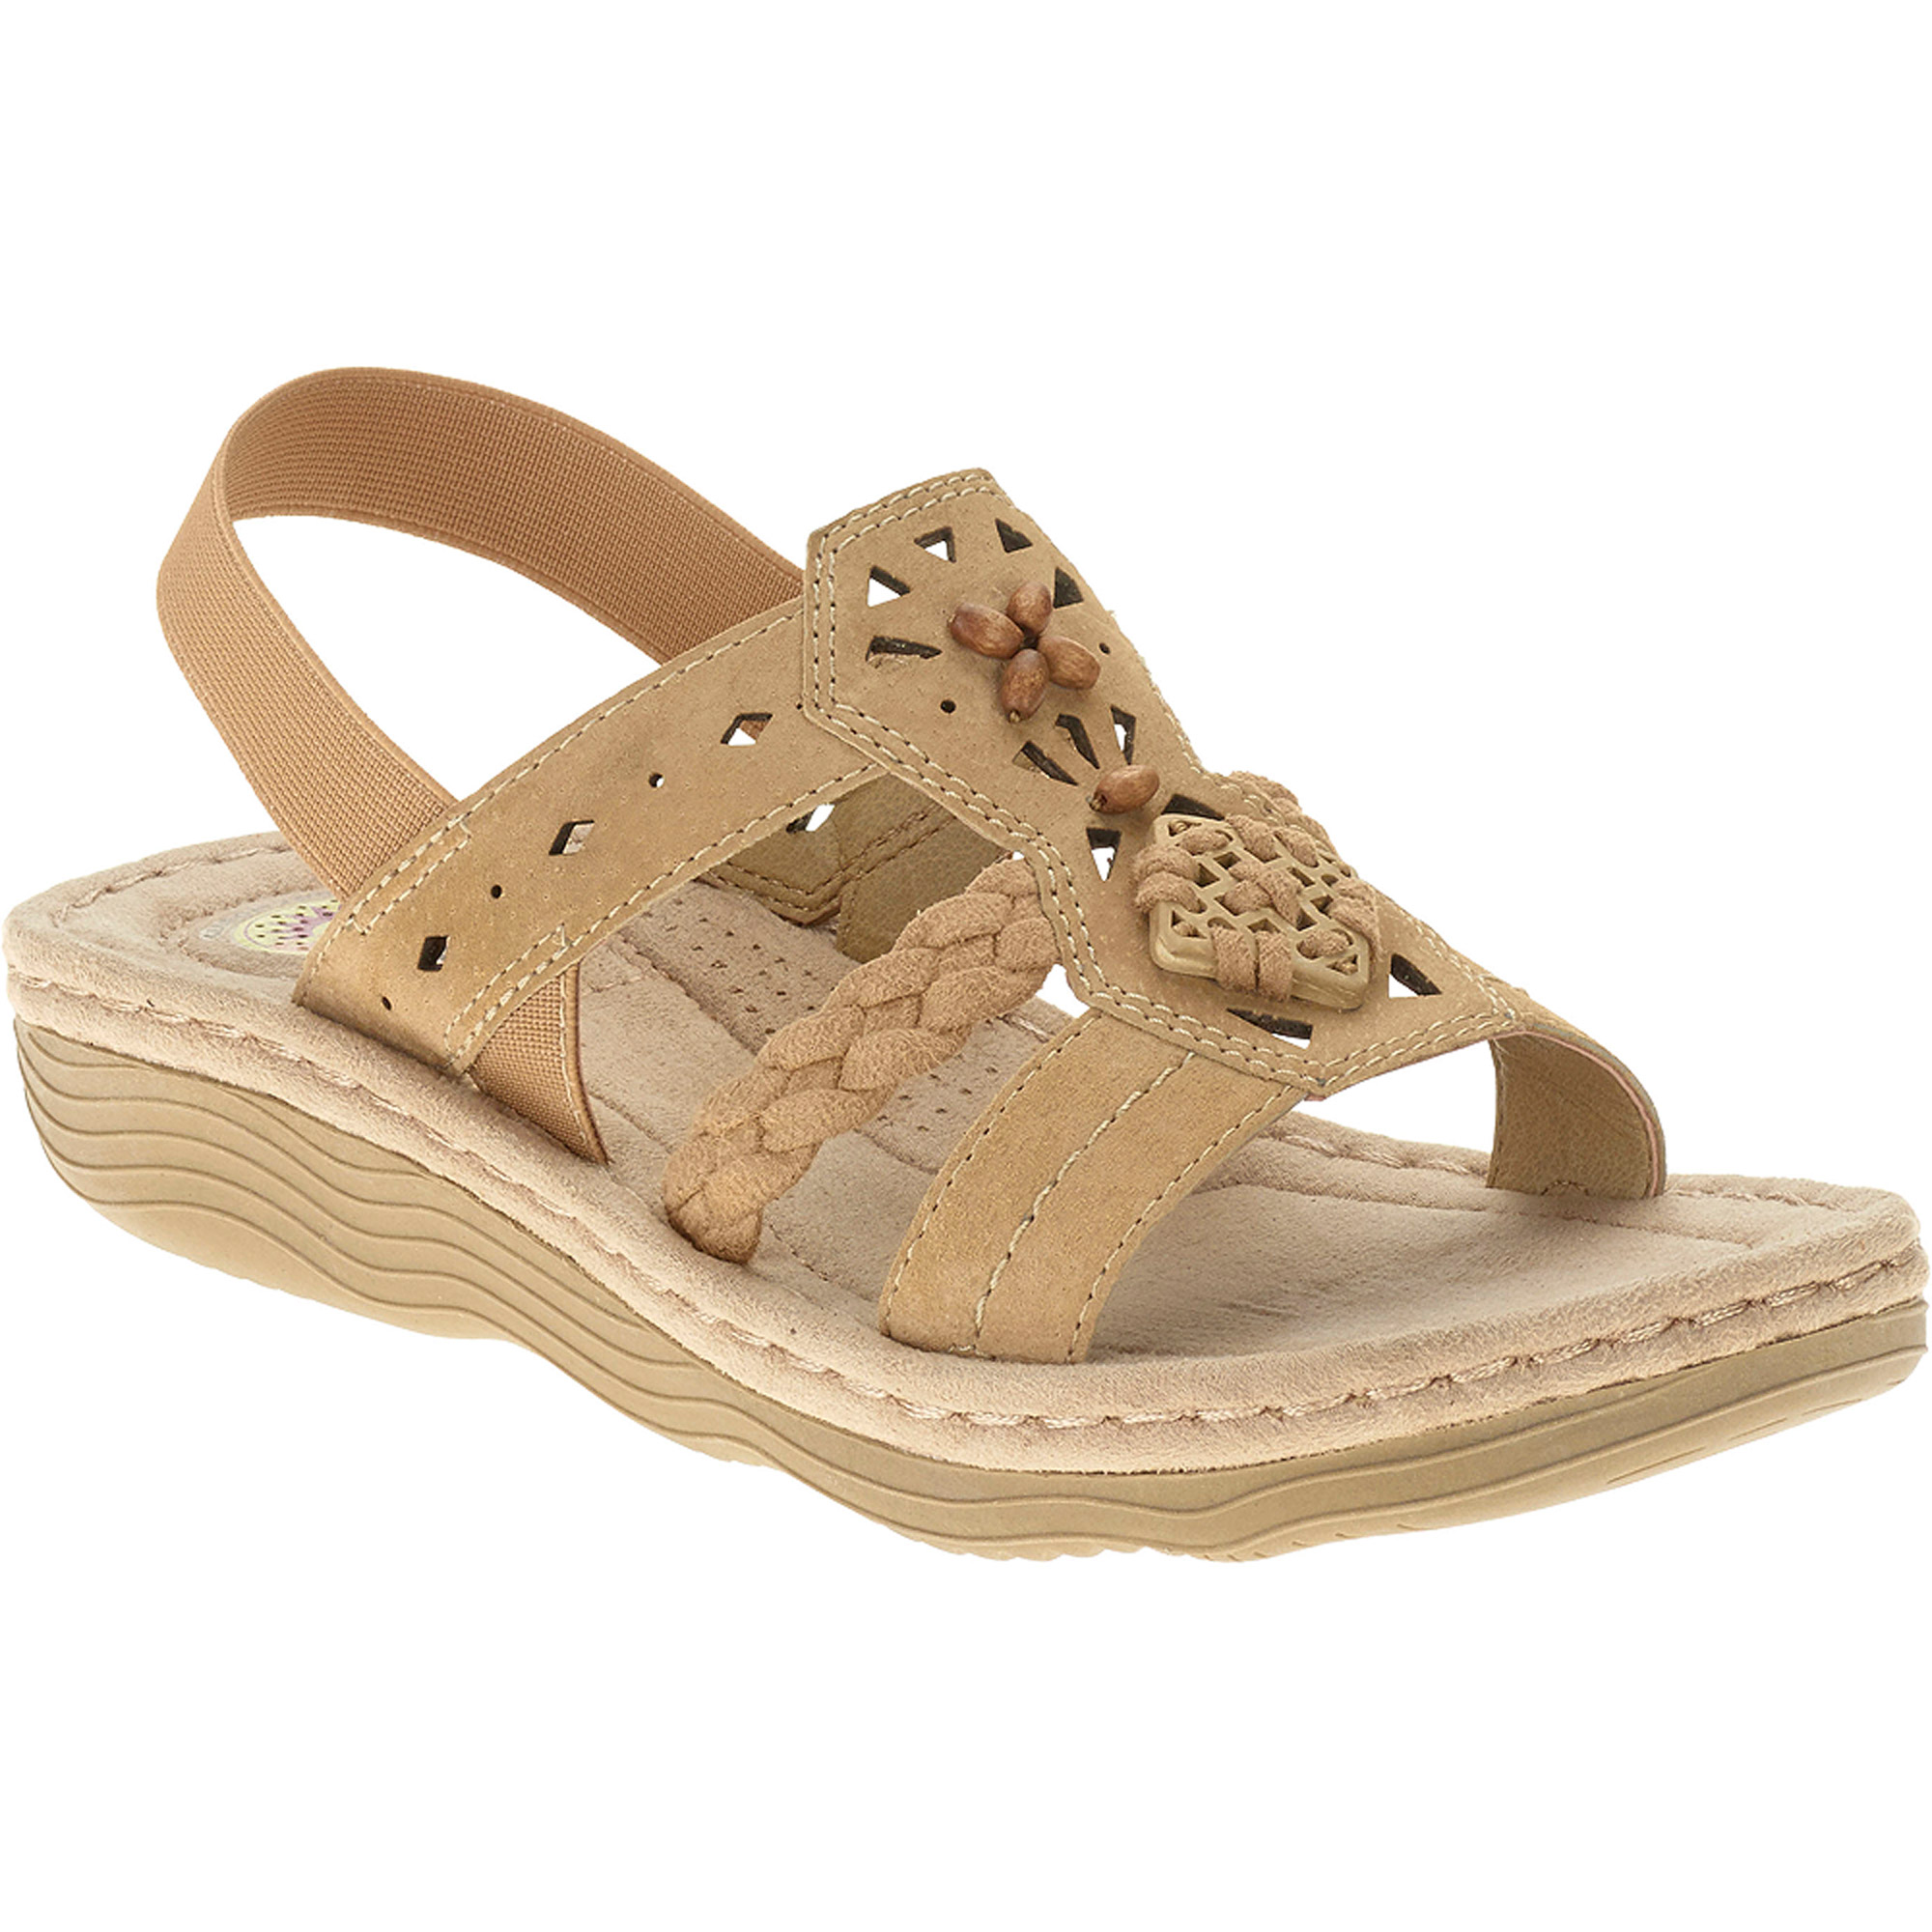 Earth Spirit Women's Laci T-strap Sandal